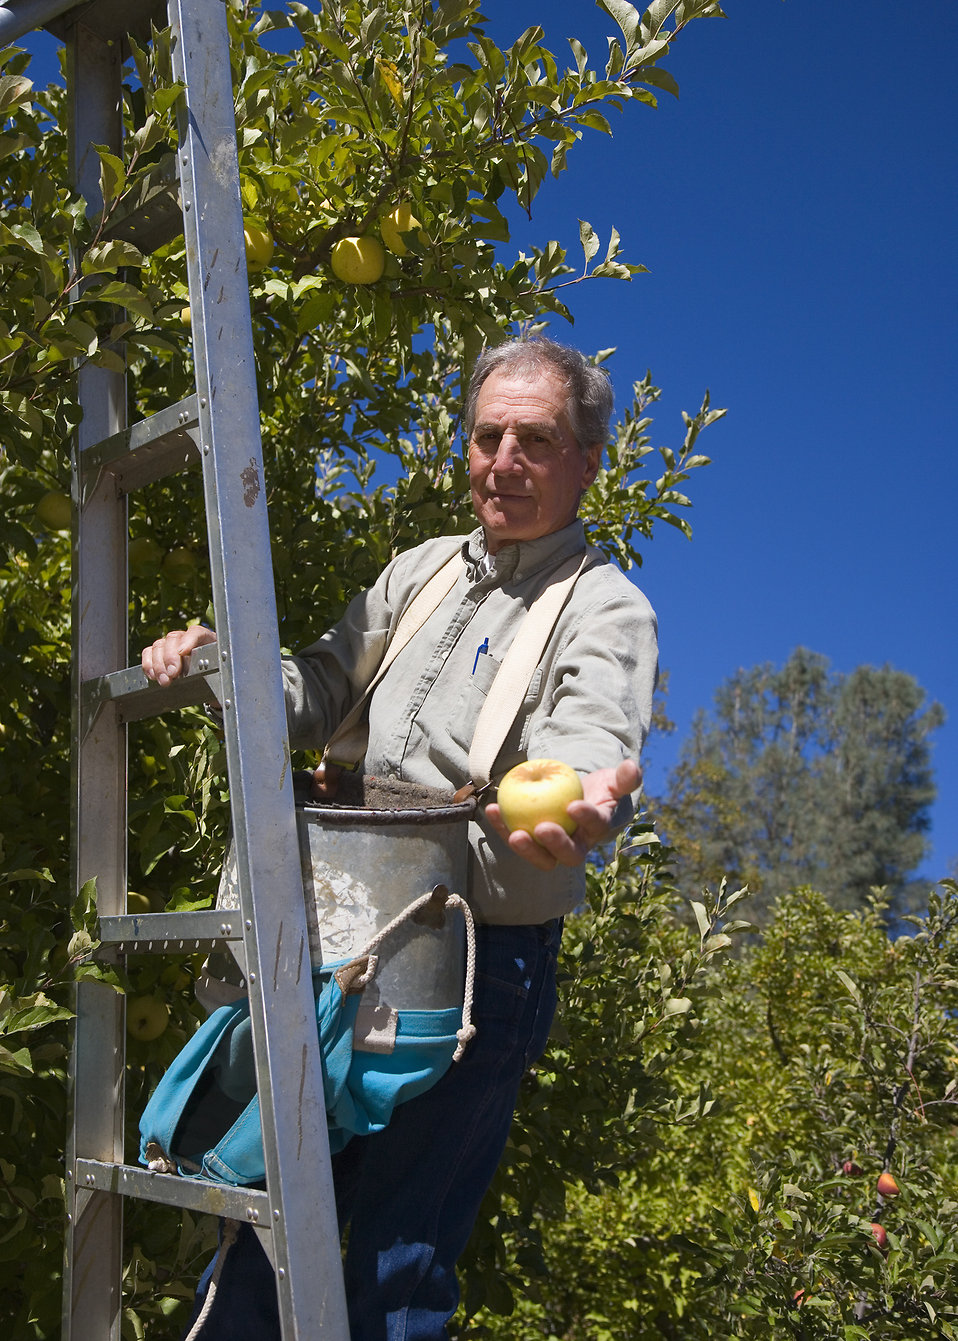 A farmer harvesting apples in an orchard in California. : Free Stock Photo